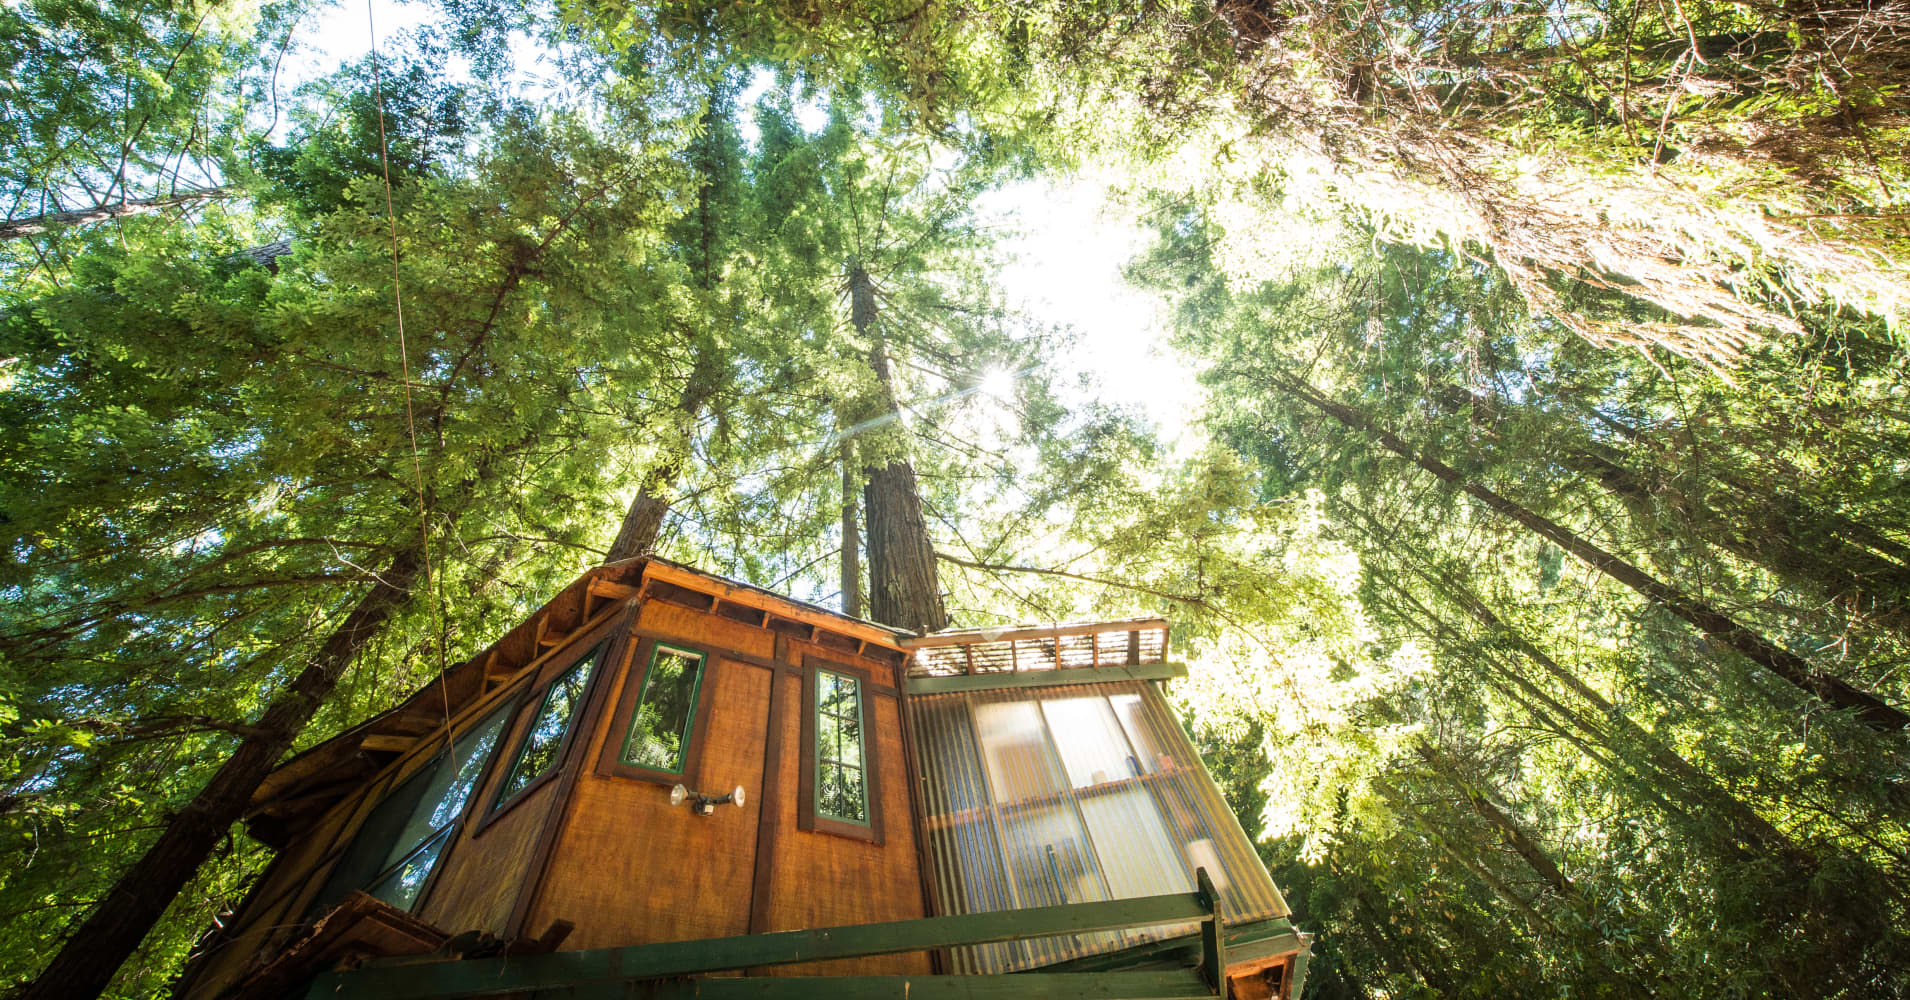 luxurious tree house high tech spend weekend glamping in luxury treehouse nestled among the sequoia forest 10 of best experiences us